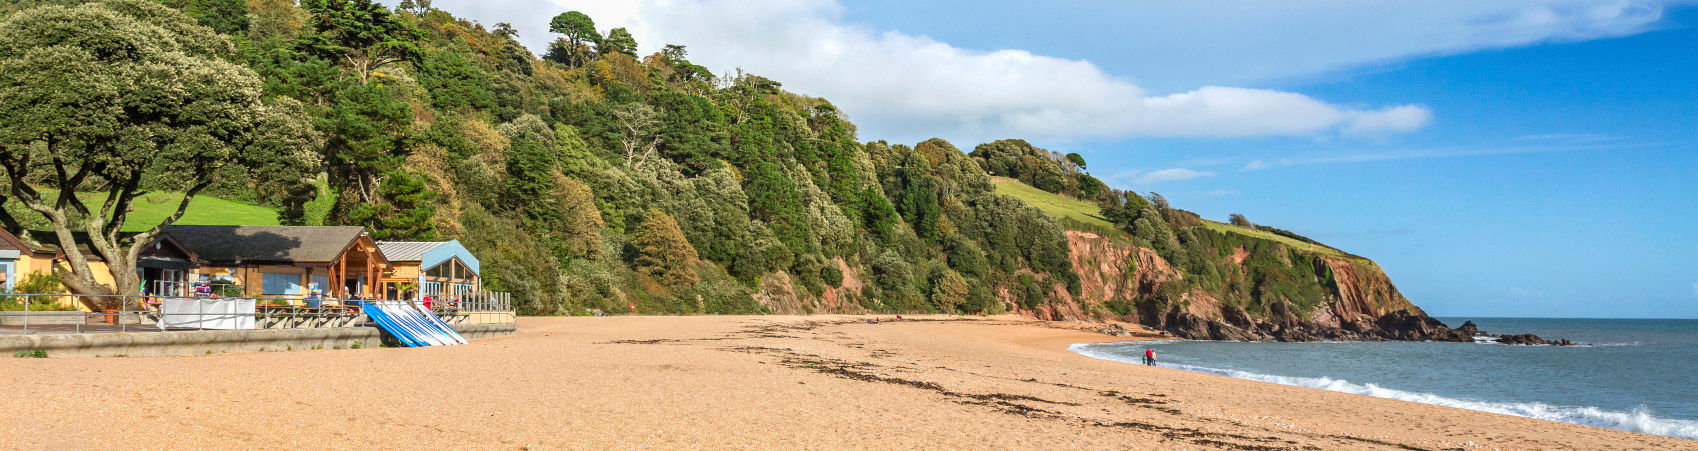 Beach Camping in Devon